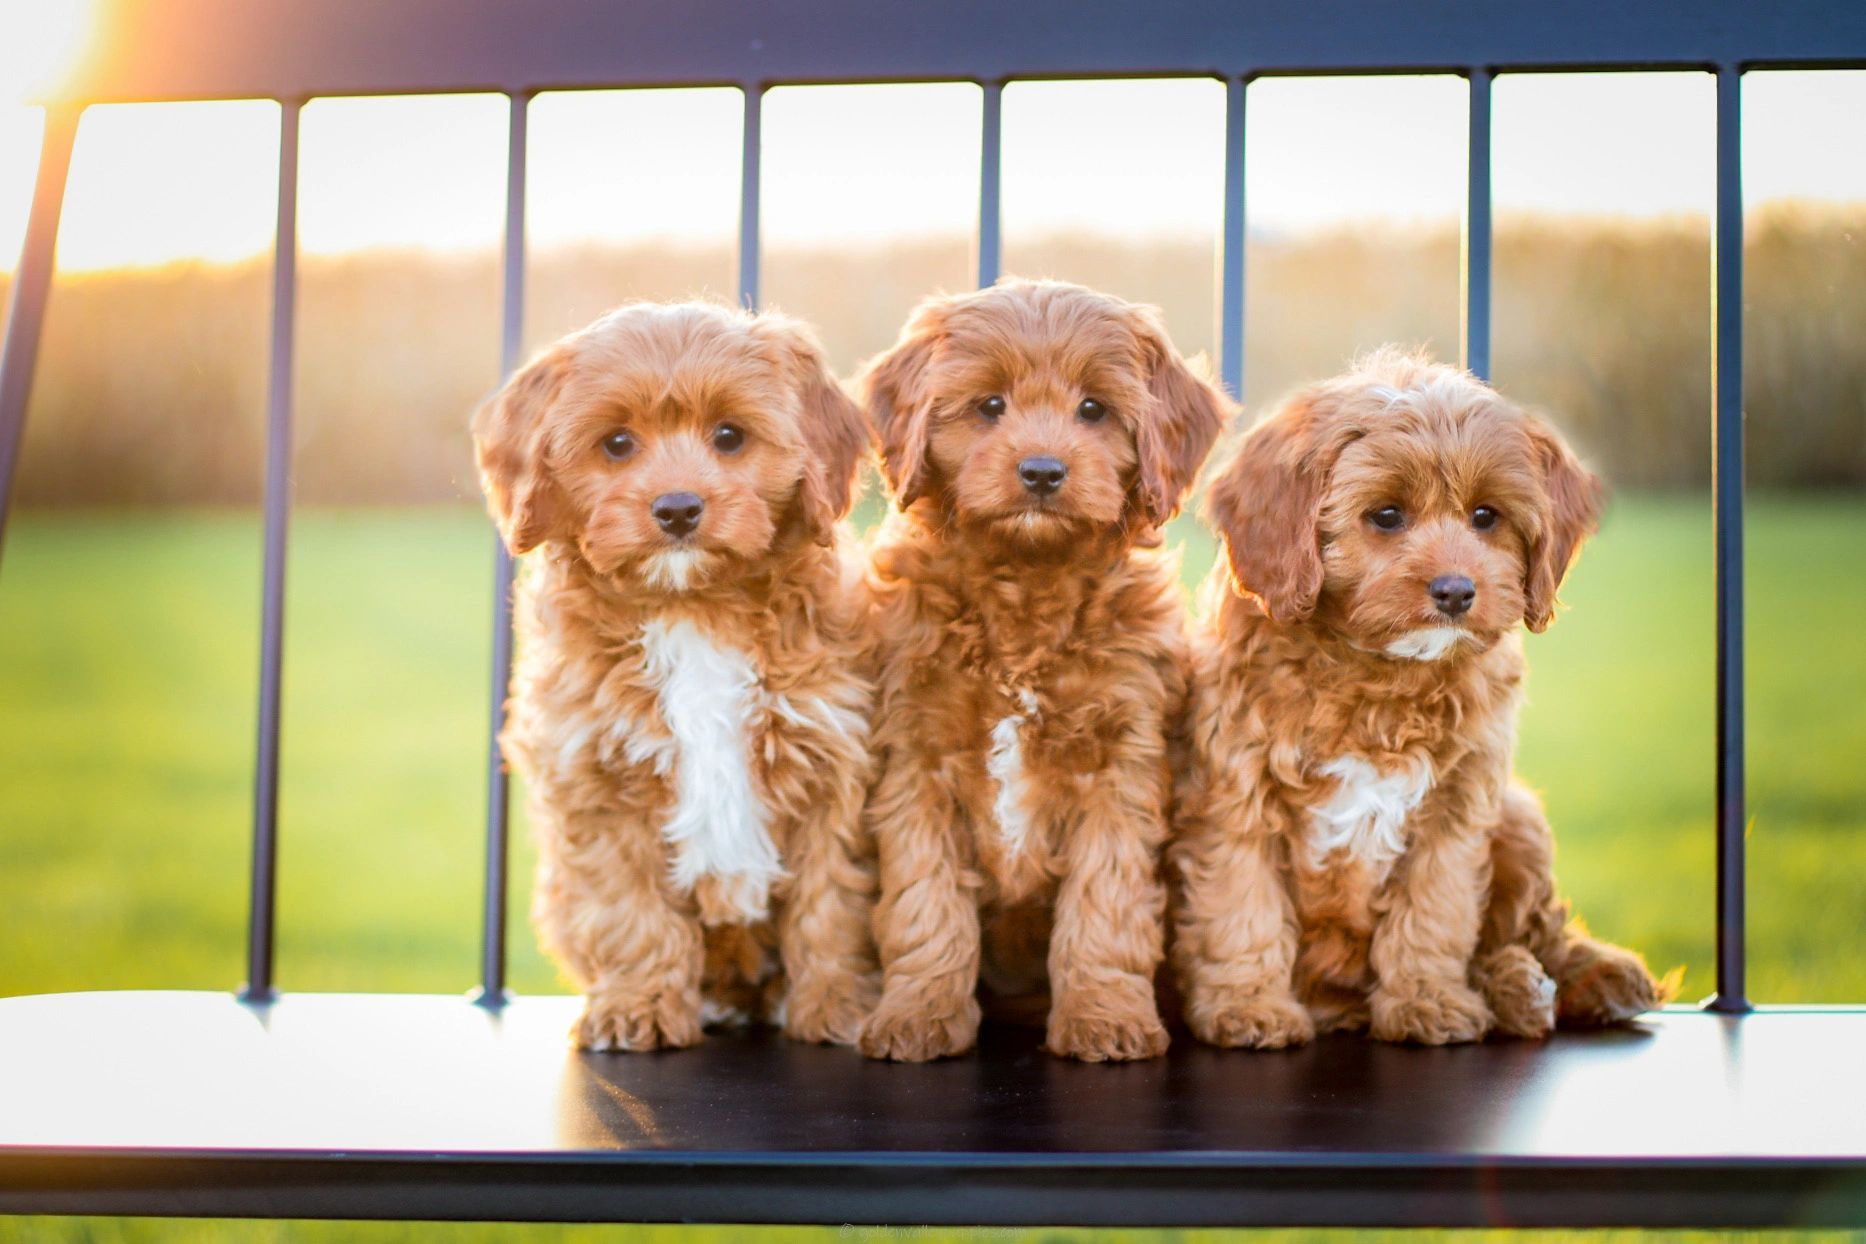 Cavapoo Puppies For Sale Small Breeder Of The Cavapoo Our Goal Is To Provide You With The Perfect P In 2020 Cavapoo Puppies Cavapoo Puppies For Sale Puppies For Sale